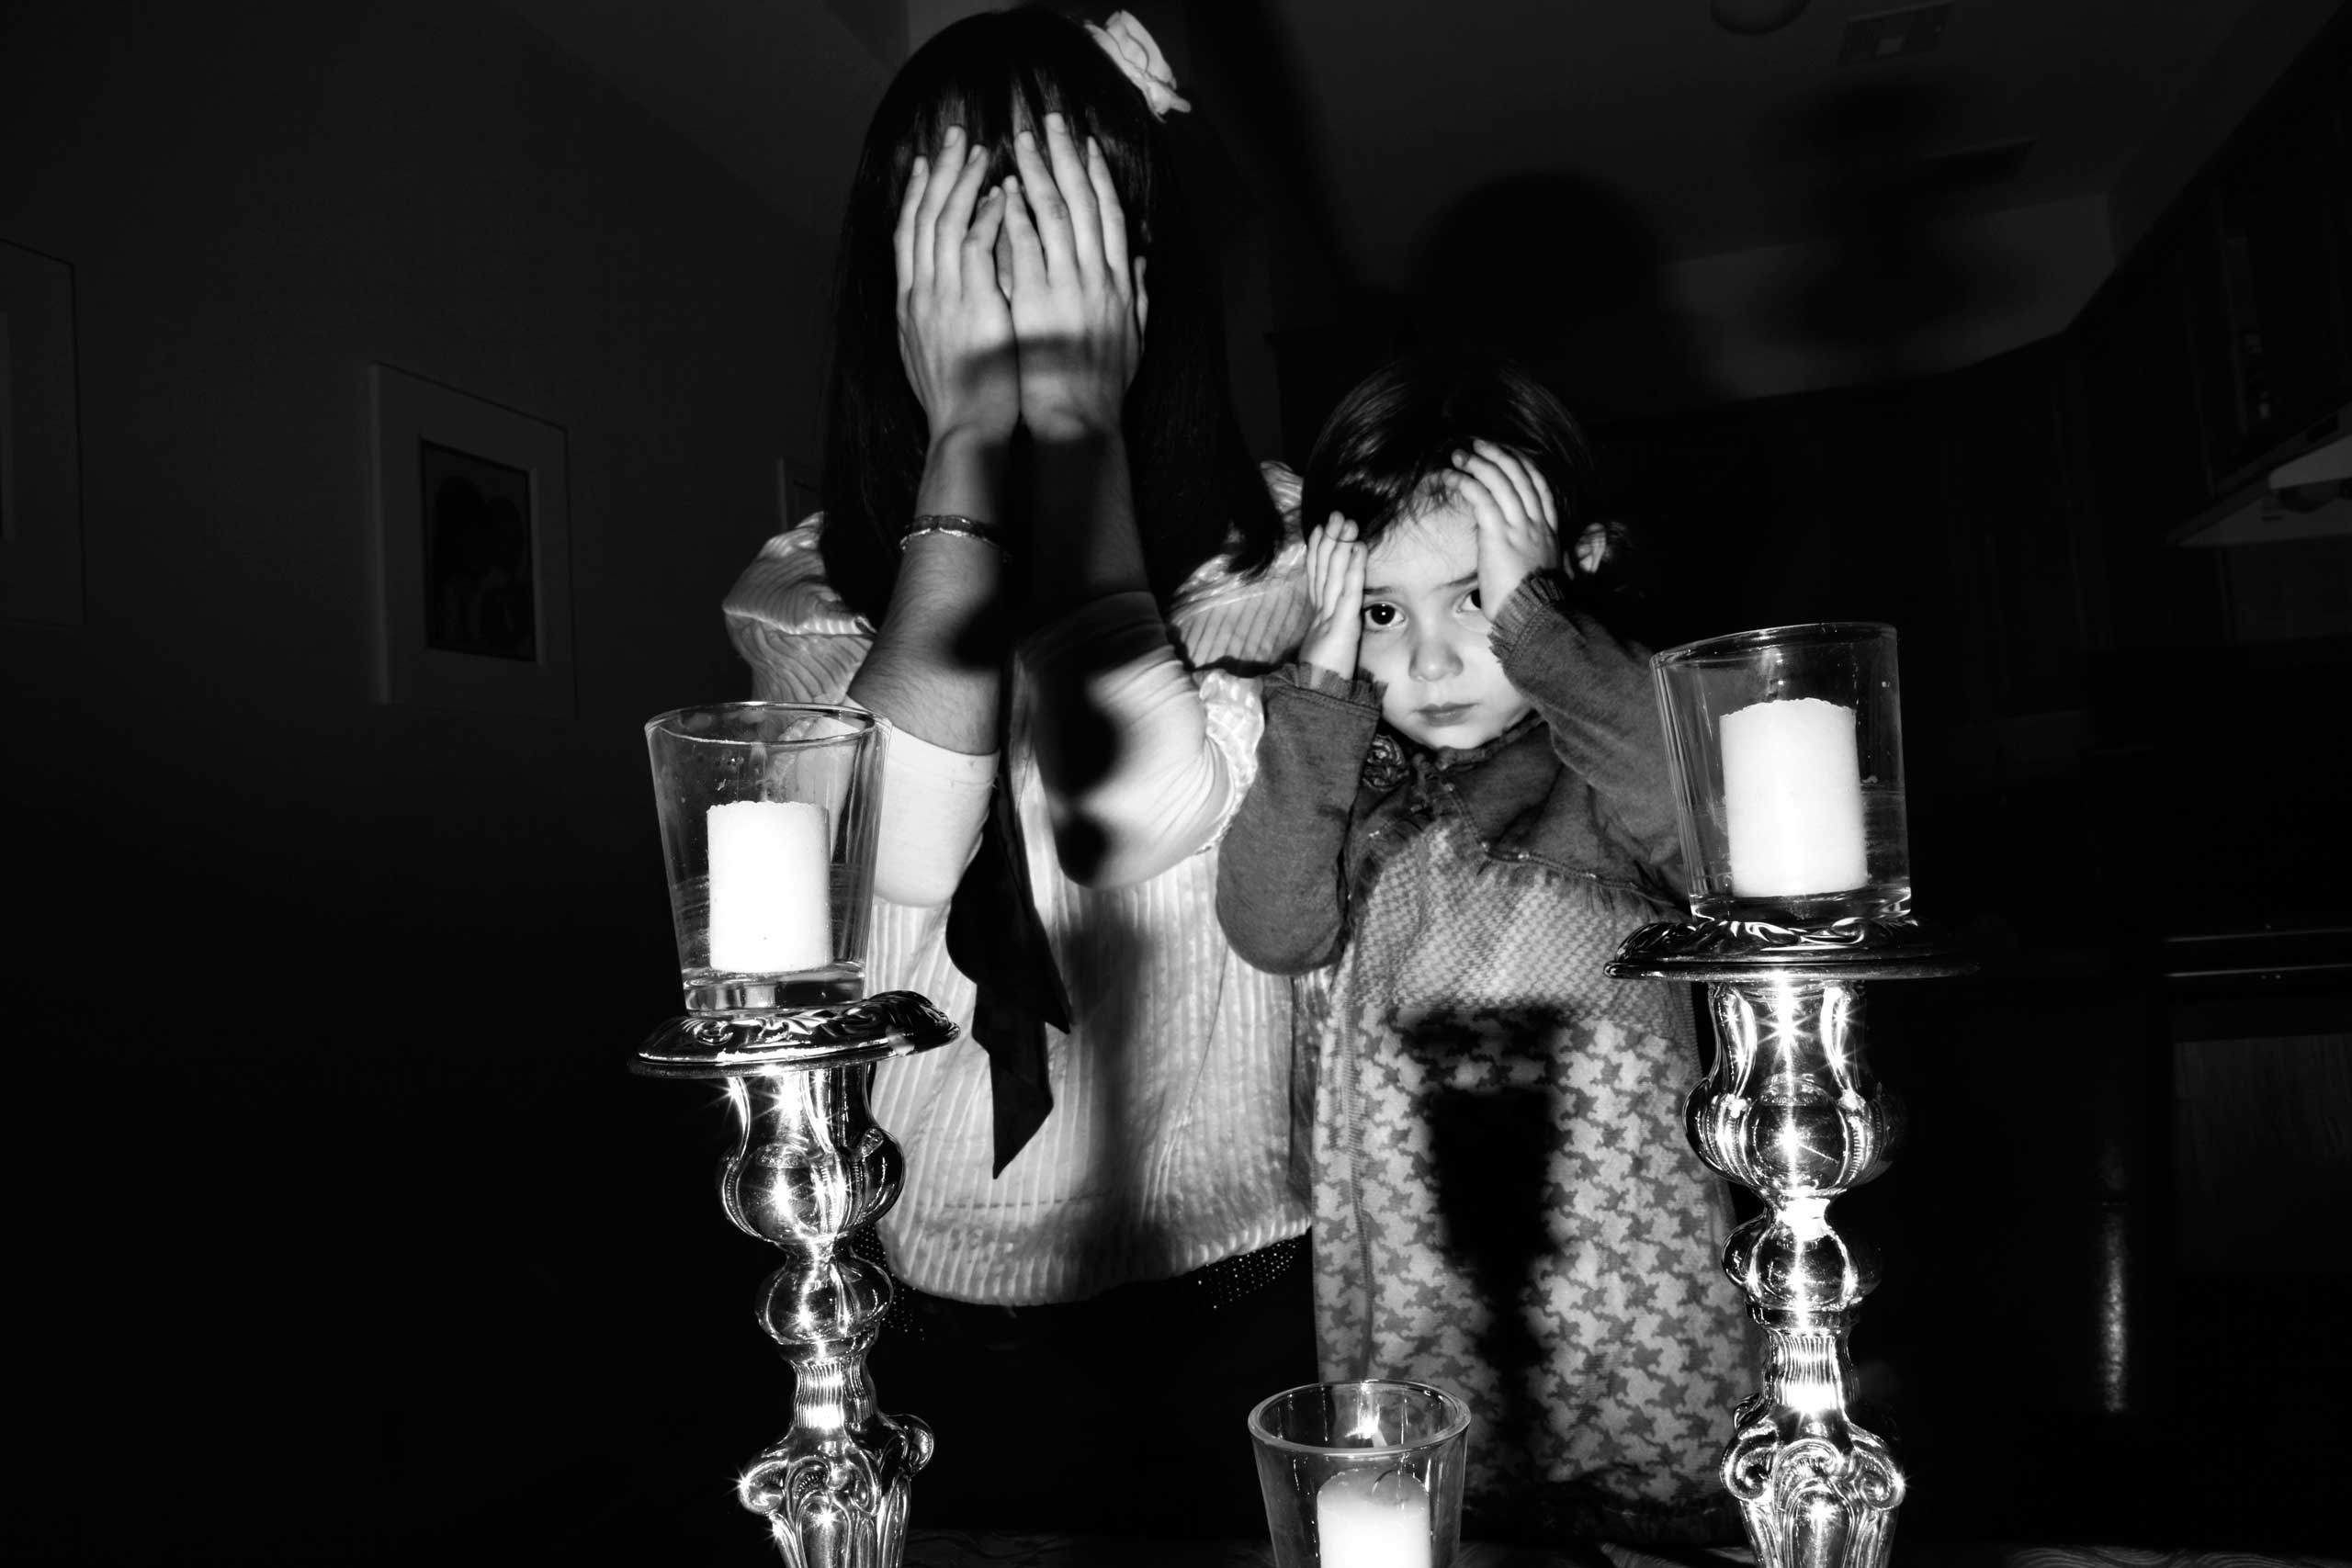 Nuchie Zirkind and her daughter, Mushka, are lighting candles to welcome the angels of Shabbat into their house before the festivities begin. Crown Heights, Brooklyn, 2010.